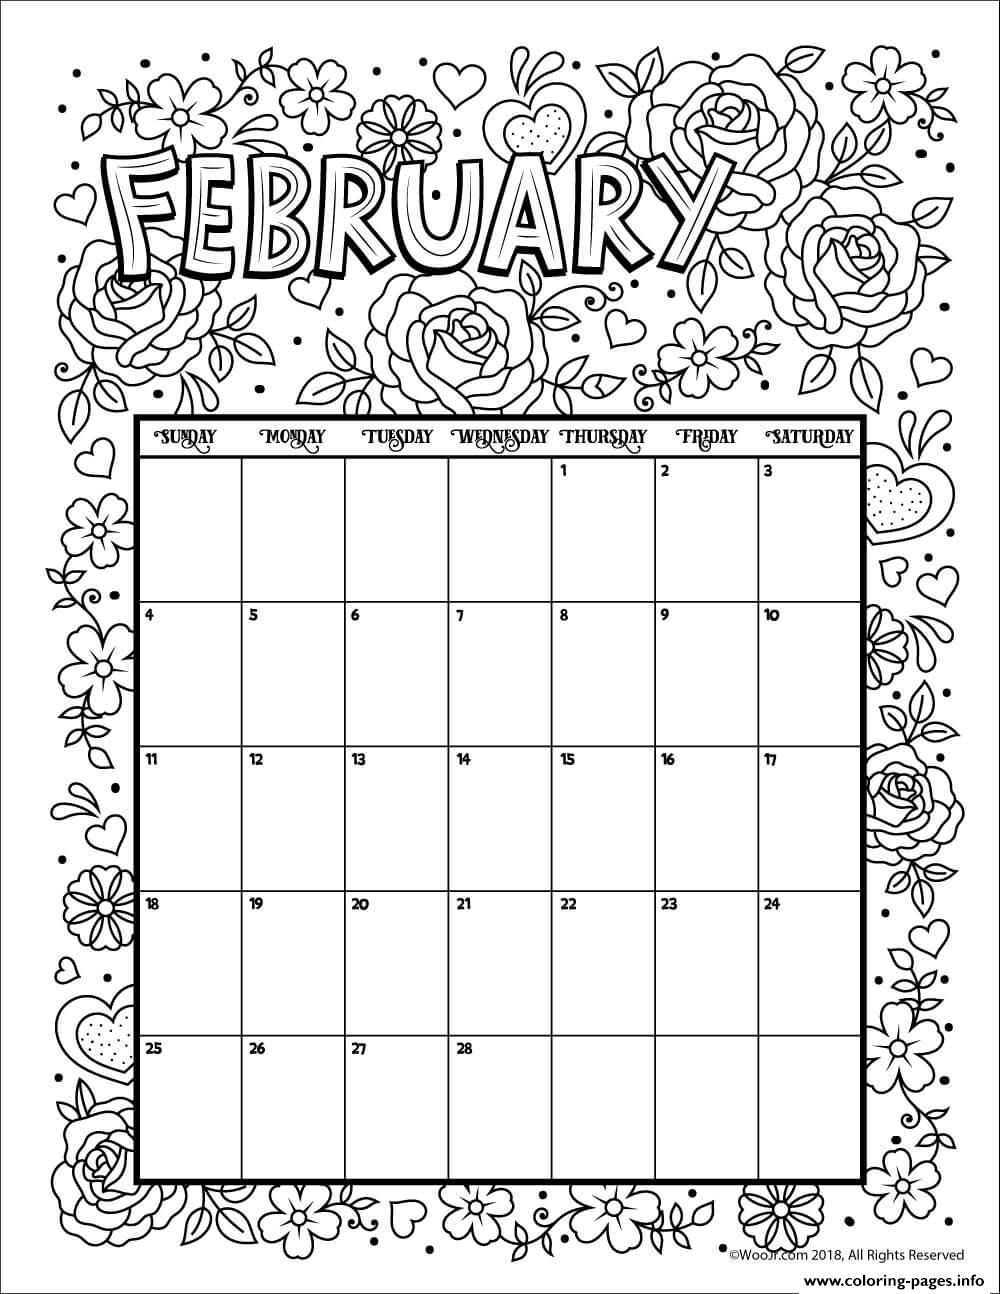 February Coloring Calendar Coloring Pages Printable